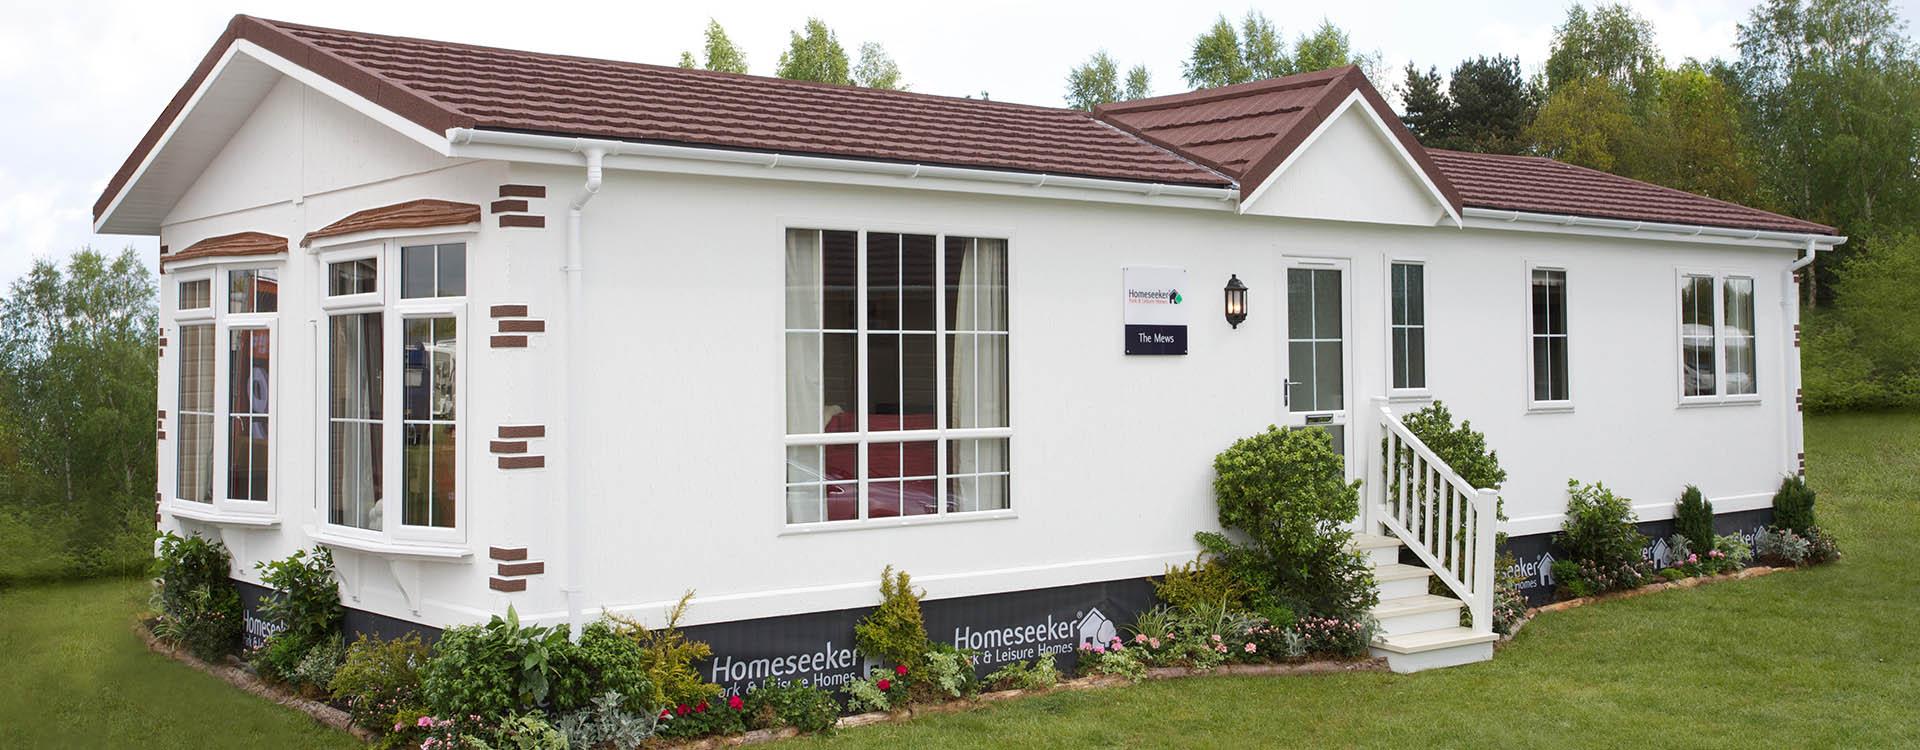 The UK Leader In The Sale Of Quality Second Hand Mobile Homes